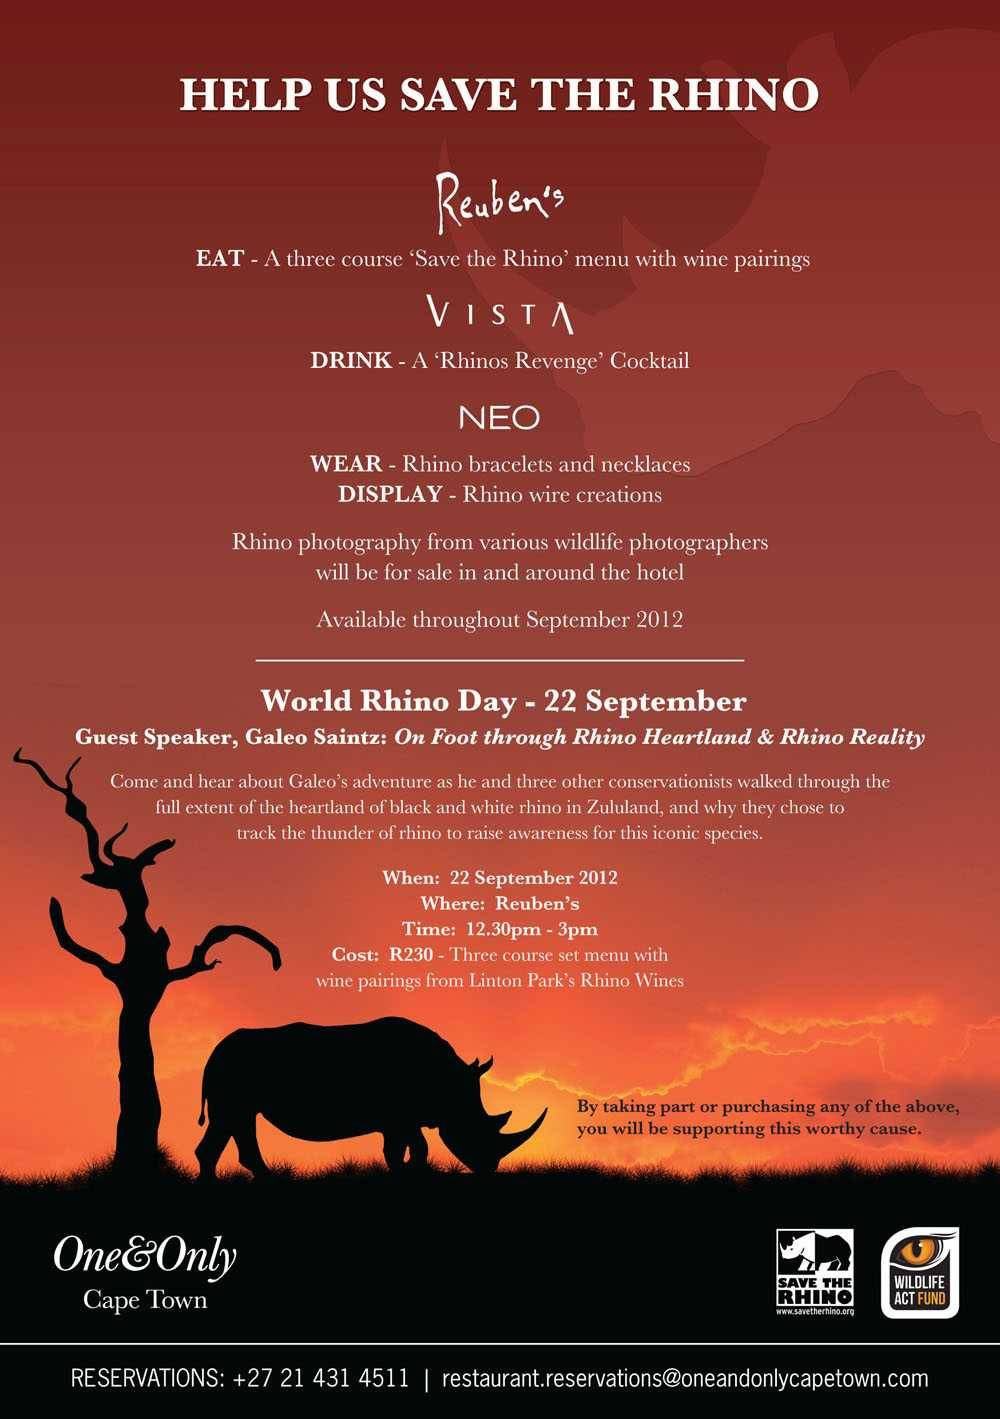 One Only Black: Support One&Only Cape Town's Save The Rhino Campaign